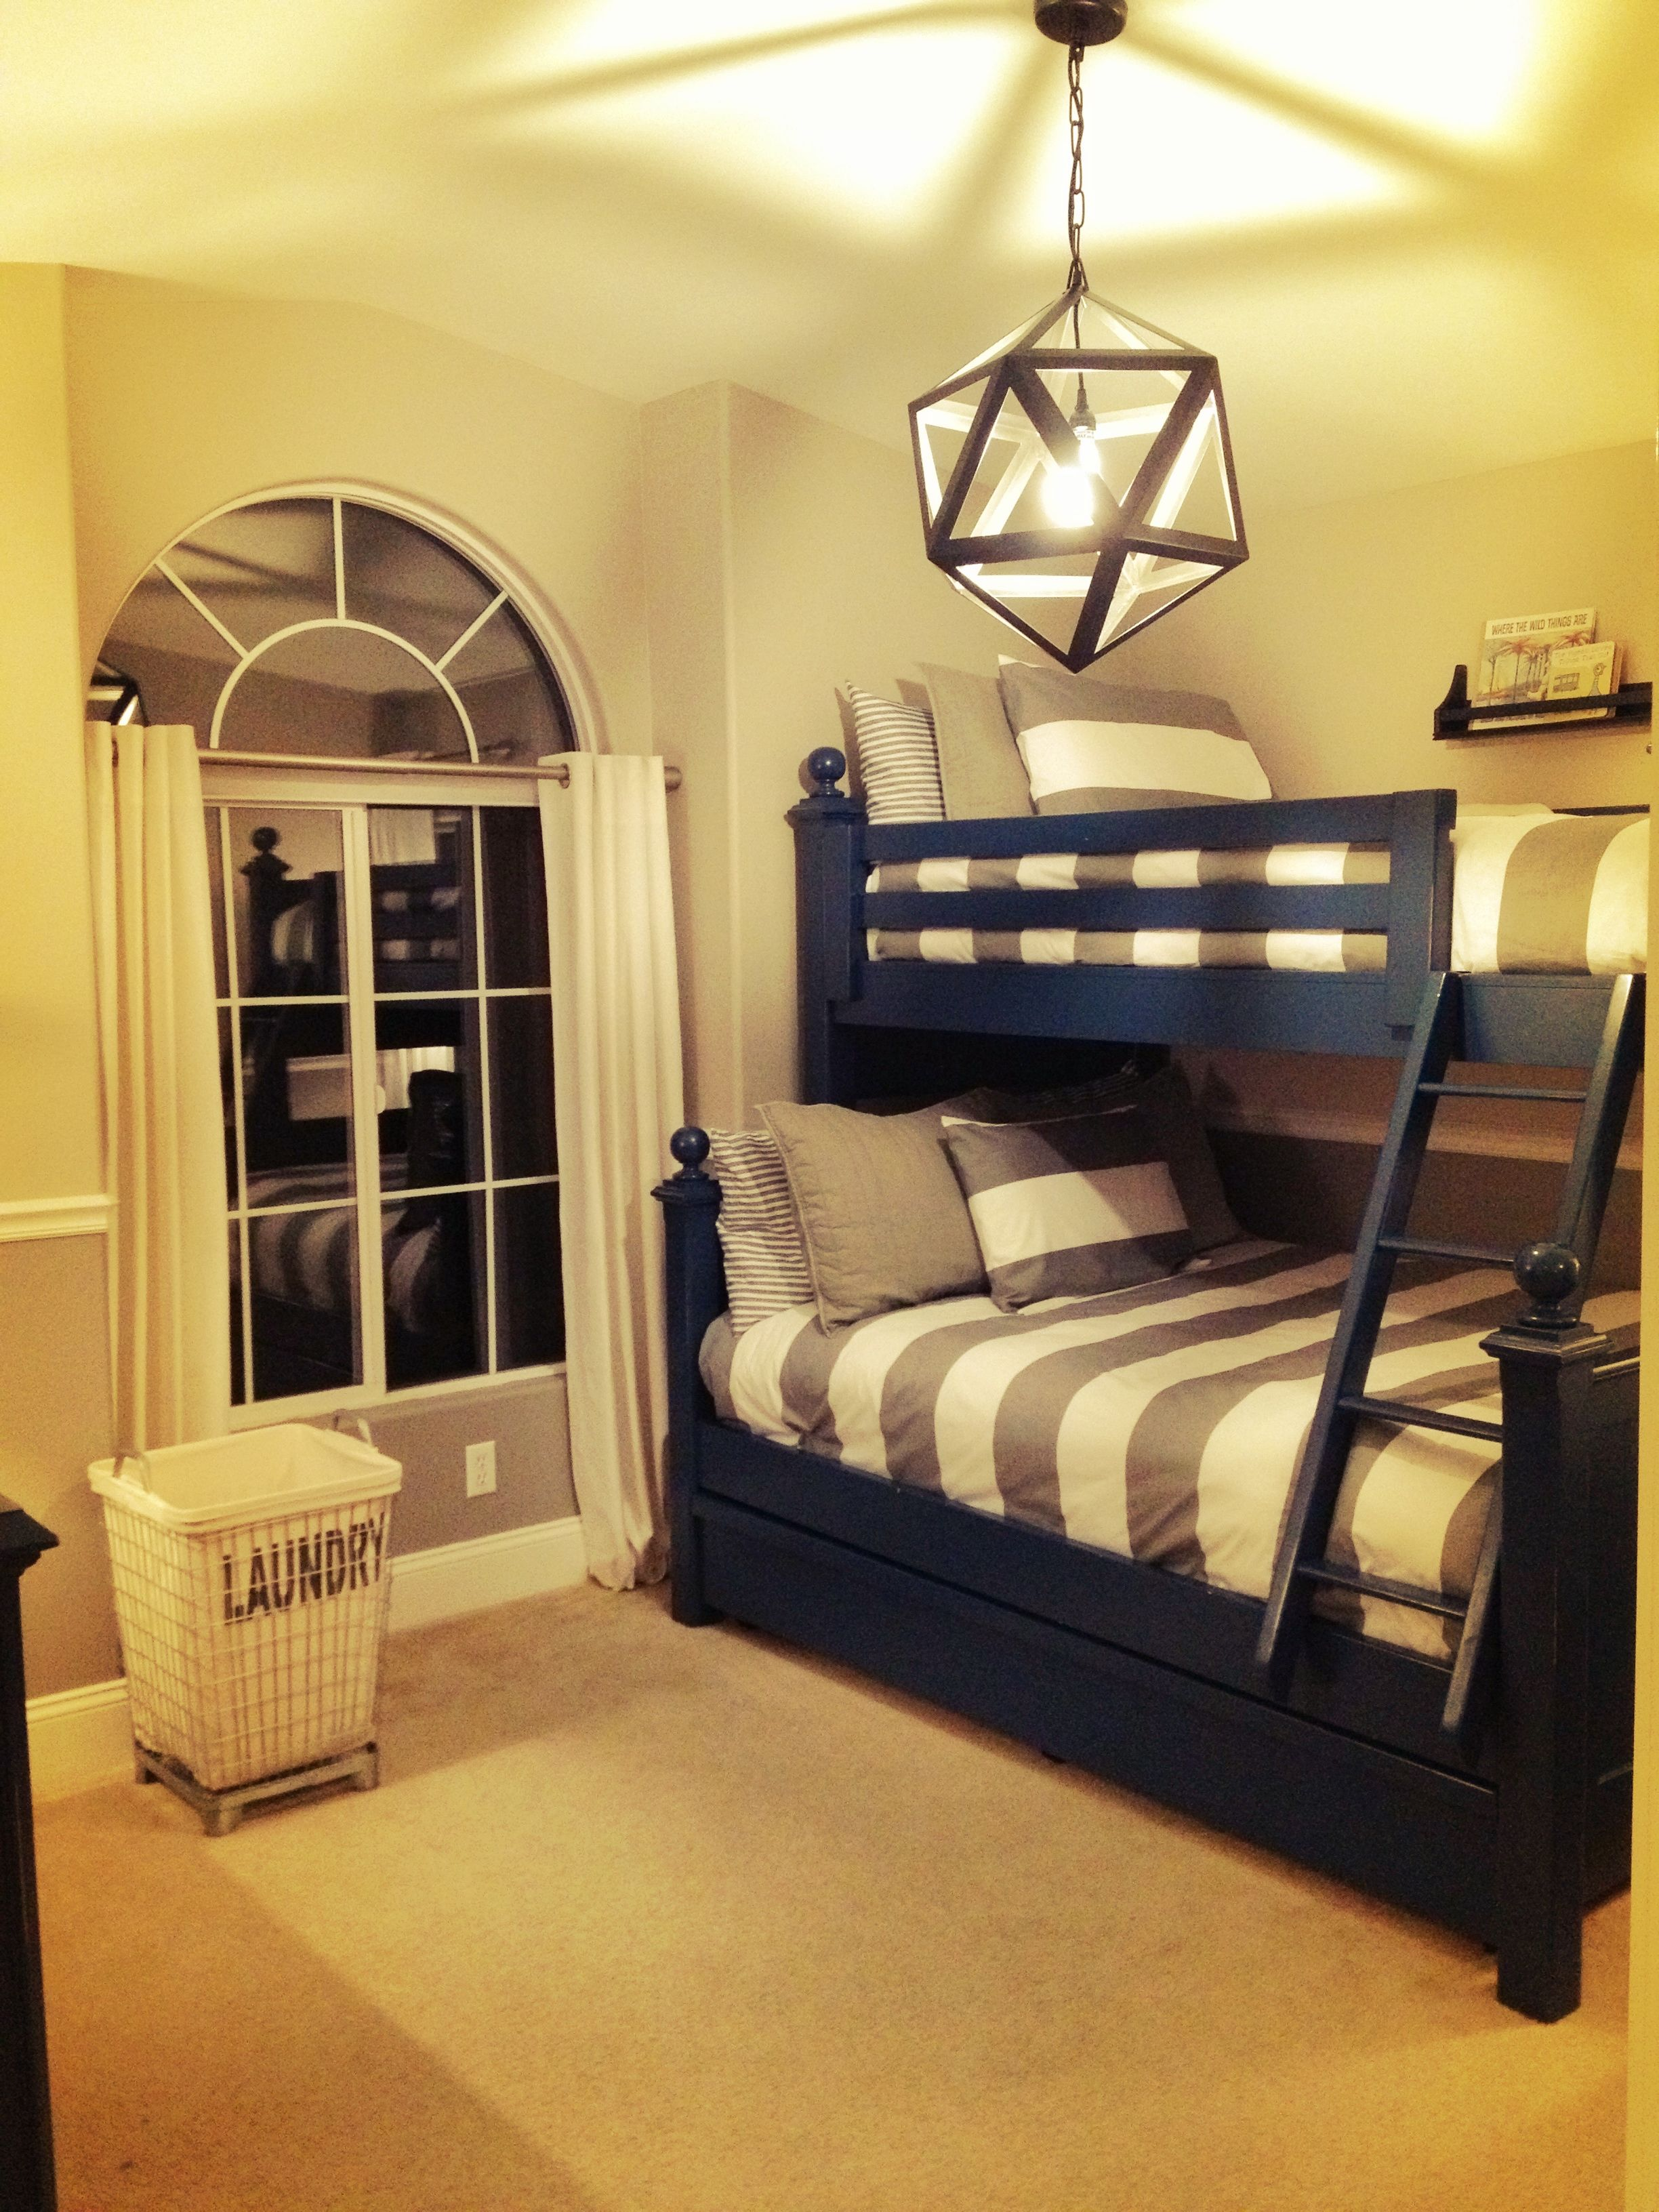 Boys Room Bunk Beds For Boys Room Small Room Bedroom Bunk Beds Boys